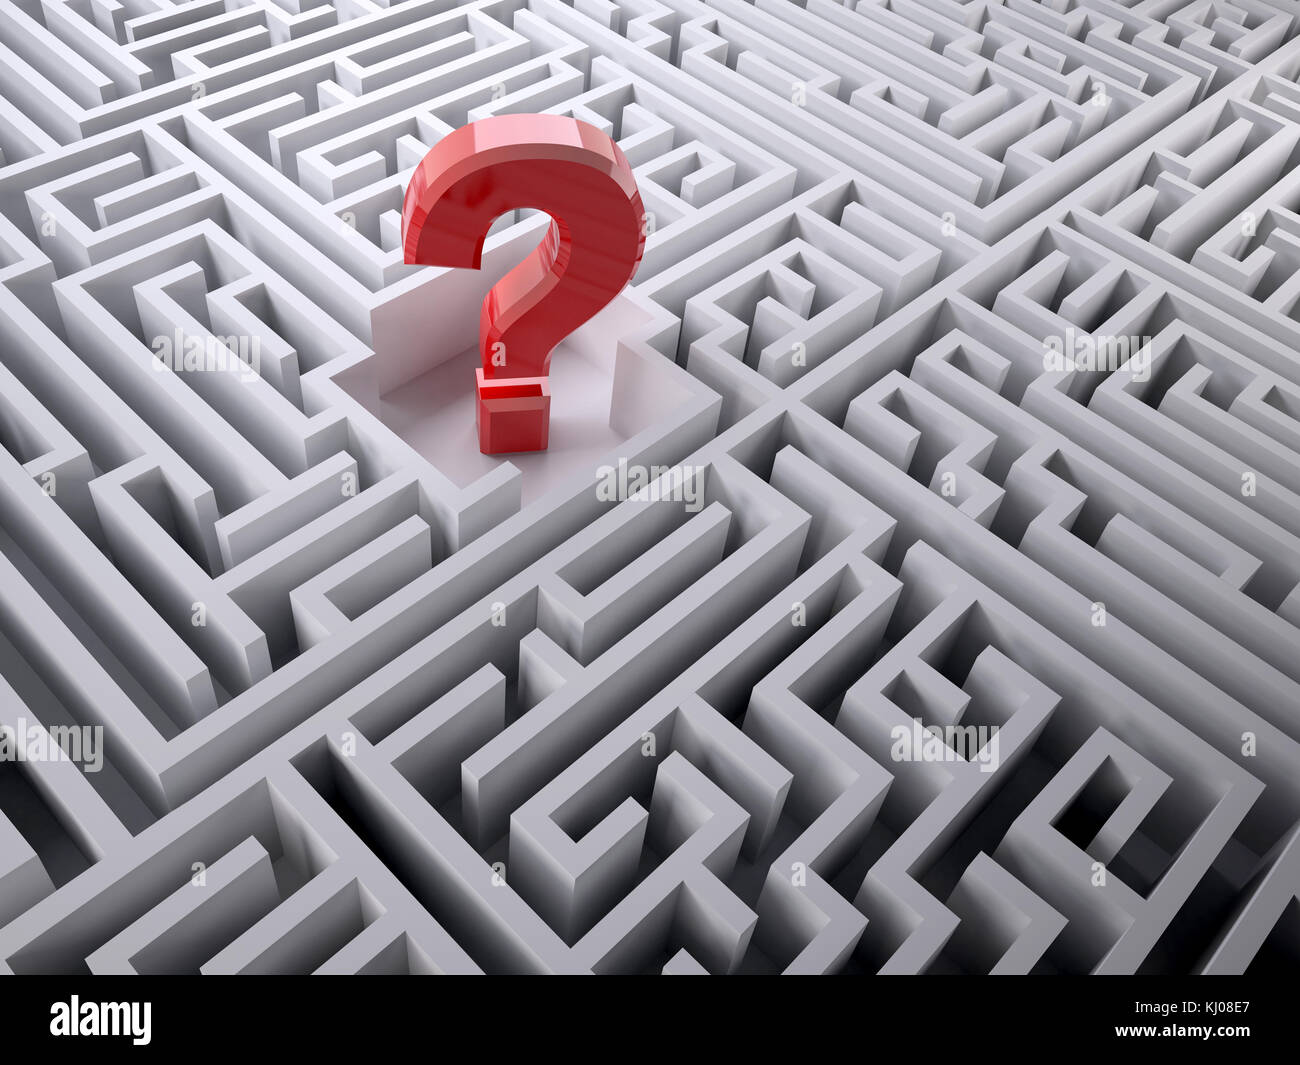 Point d'interrogation rouge dans le Labyrinthe Labyrinthe, 3d illustration Photo Stock